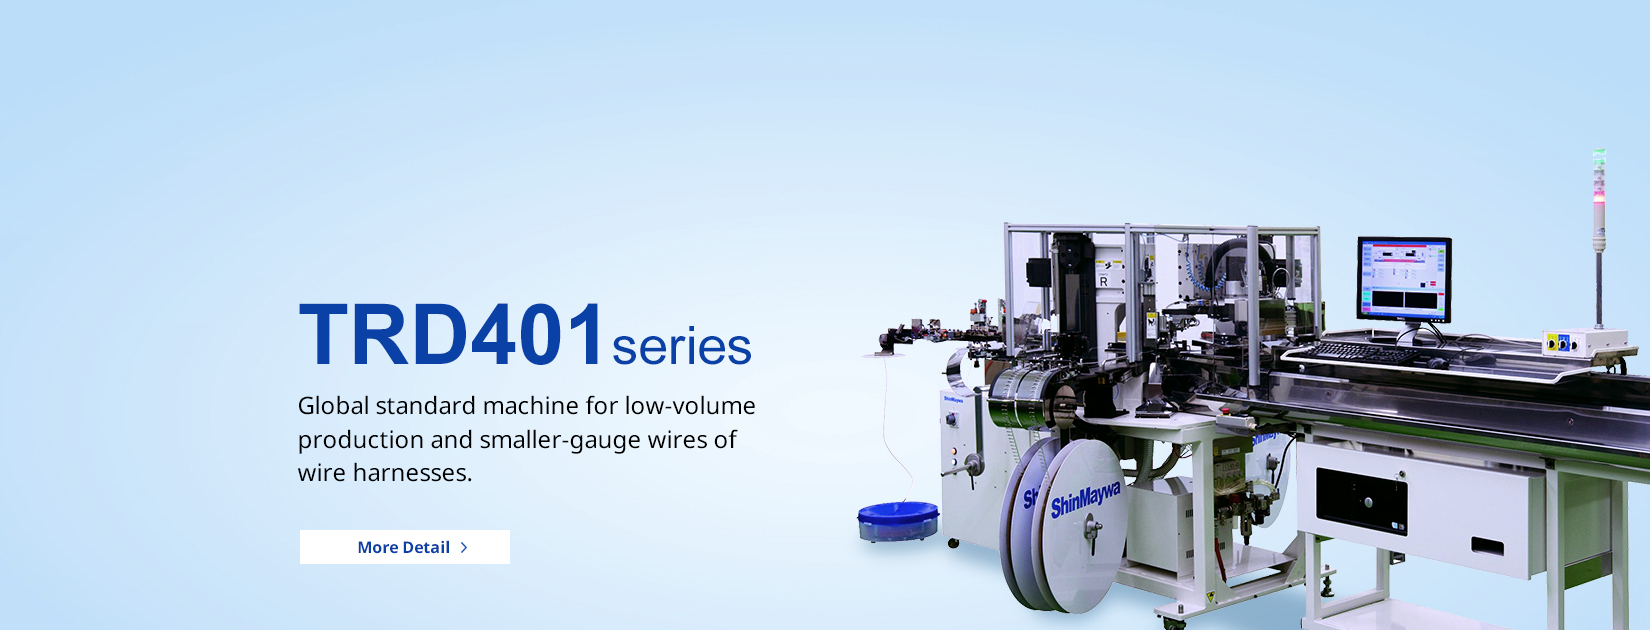 TRD401 series Global standard machine for low-volume production and smaller-gauge wires of wire harnesses.